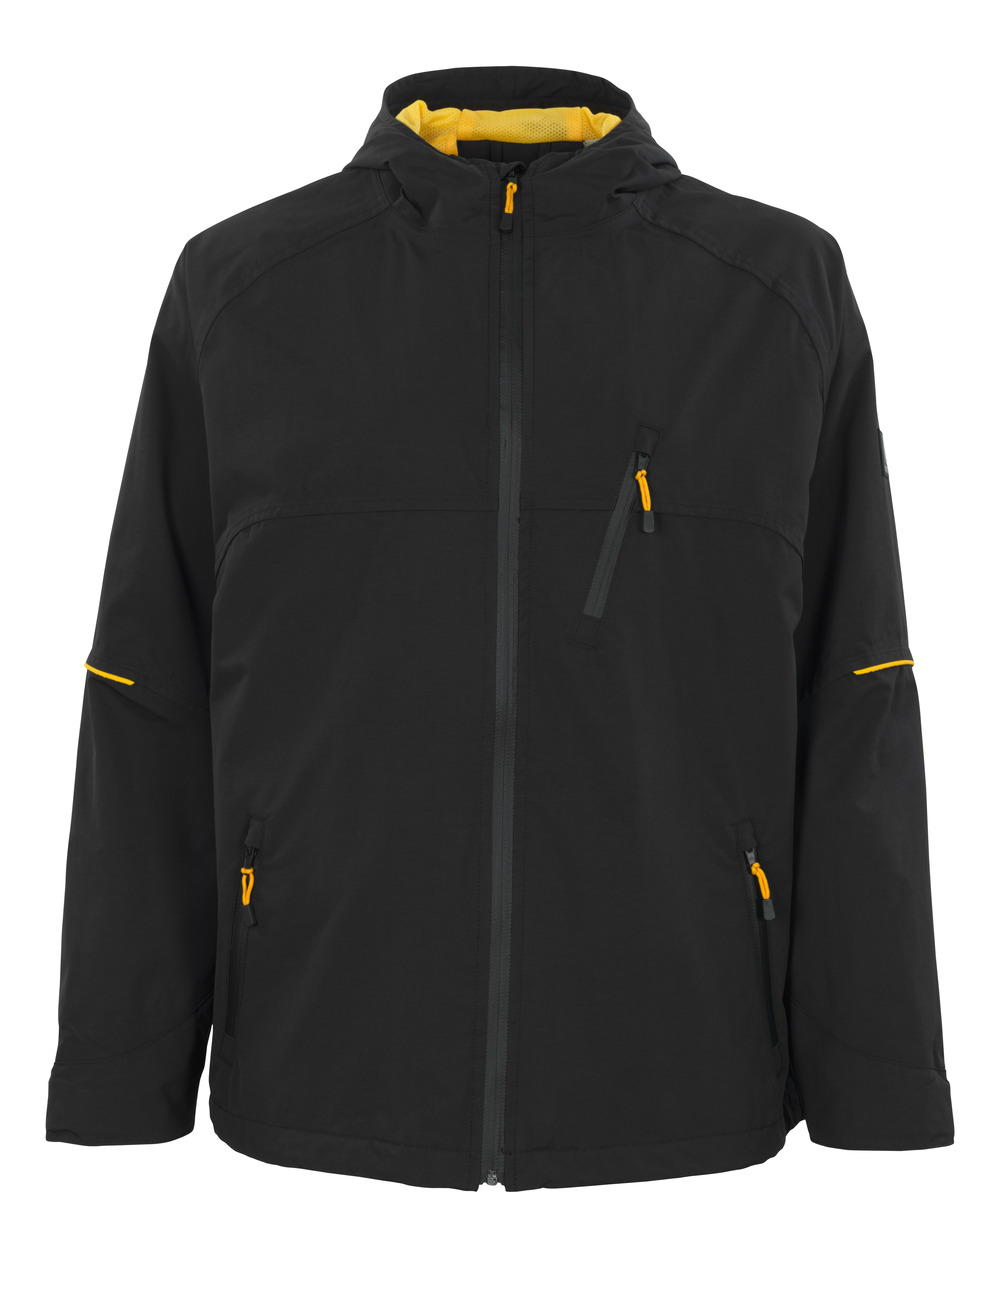 05003-127-09 Outer Shell Jacket - black